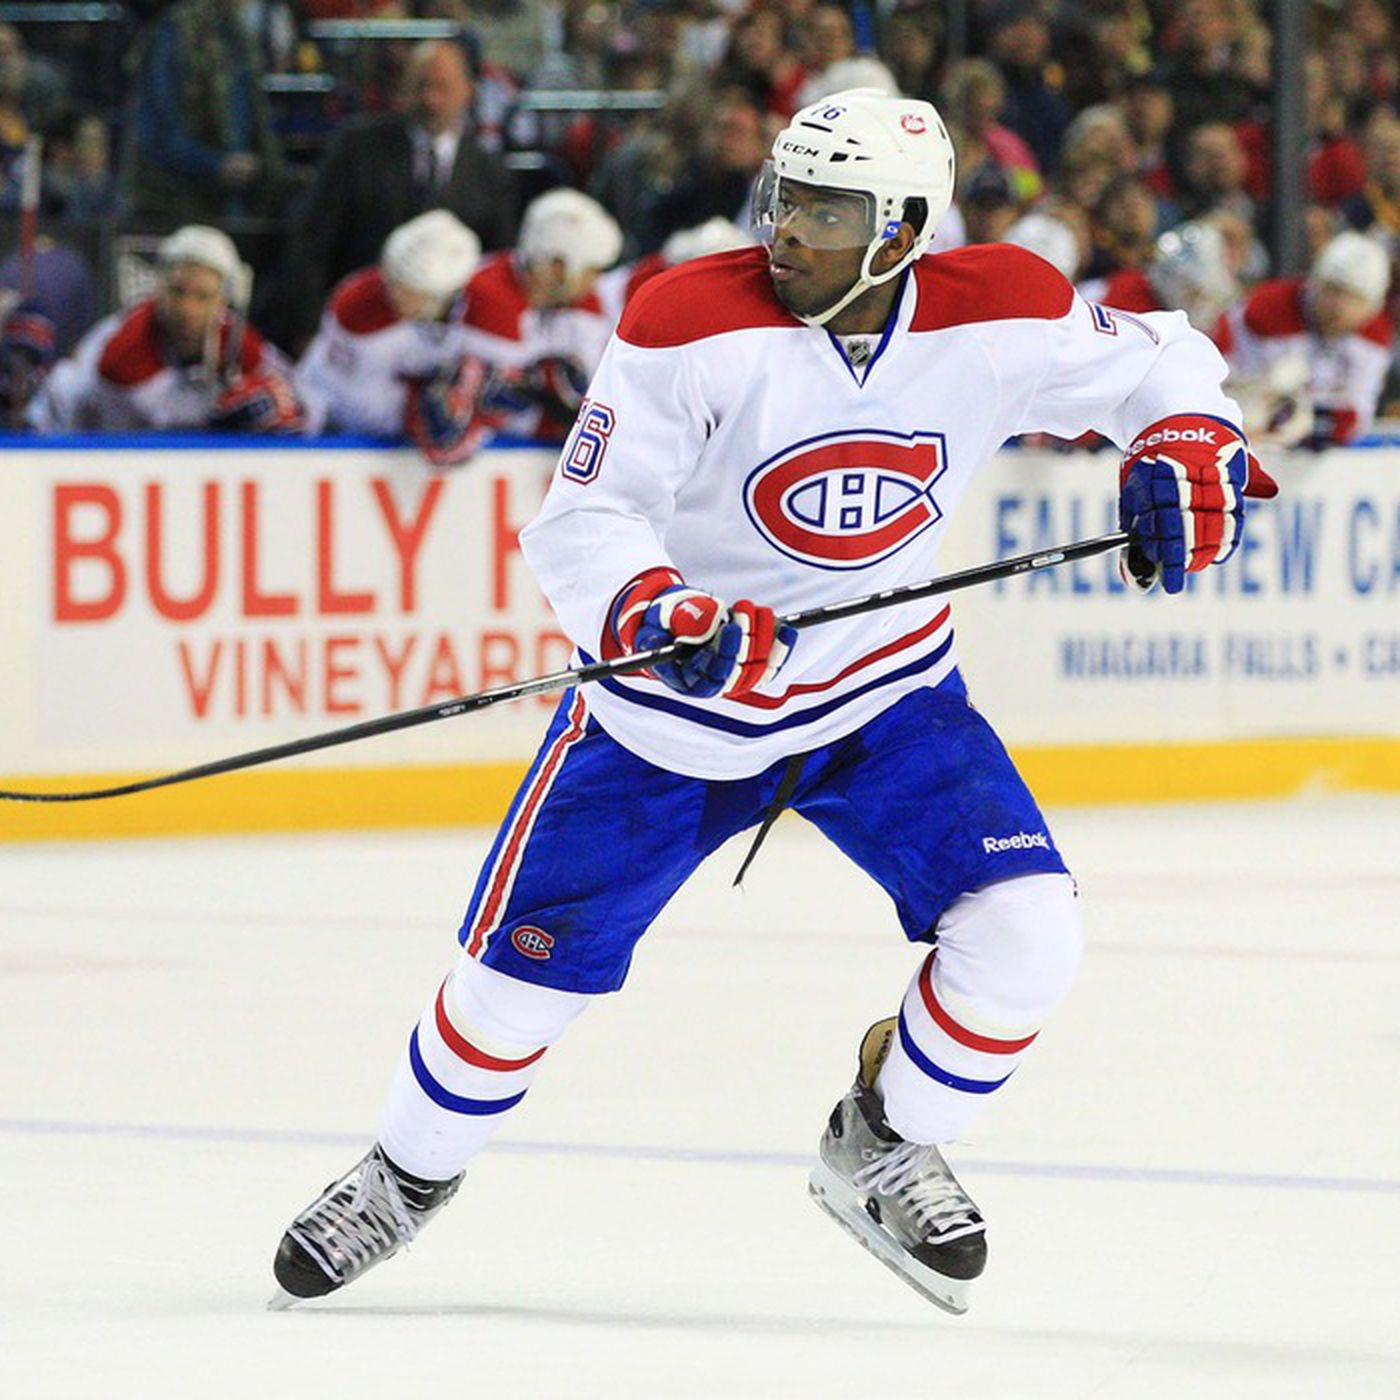 af6d14f5ef6 P.K. Subban rumors  Is there ANY chance he comes to the Flyers  (Video) -  Broad Street Hockey